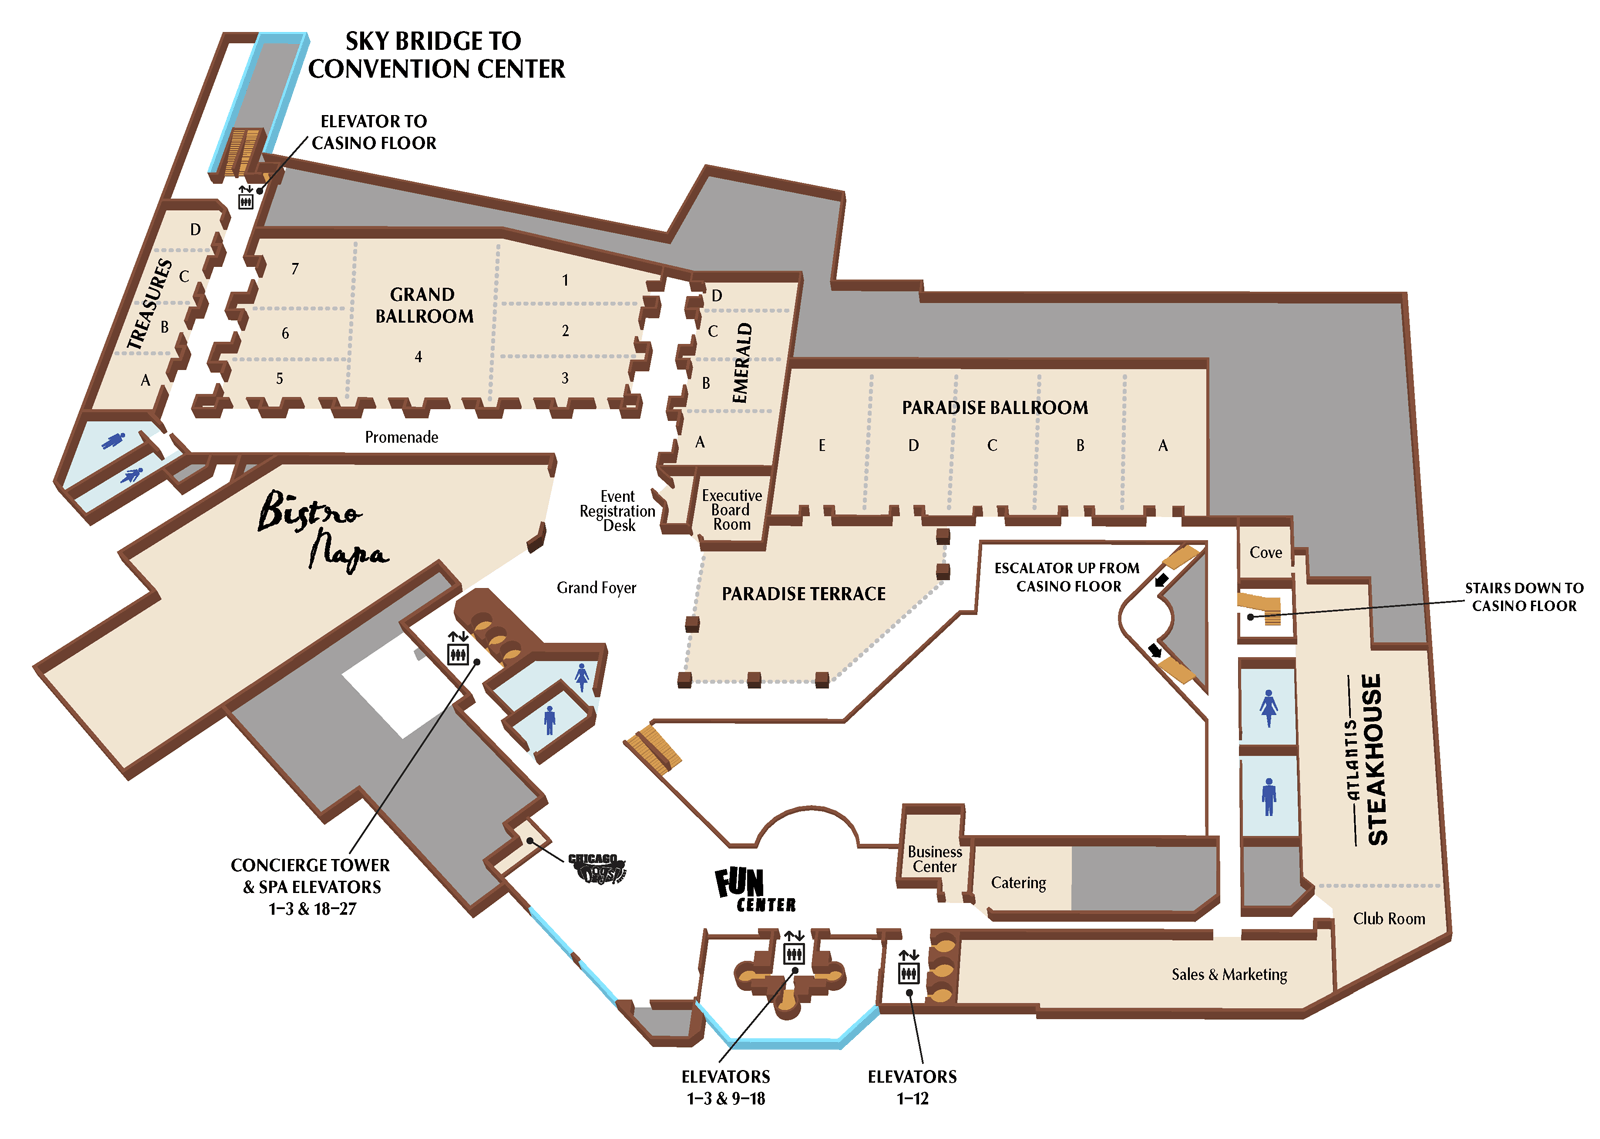 Atlantis second floor plan